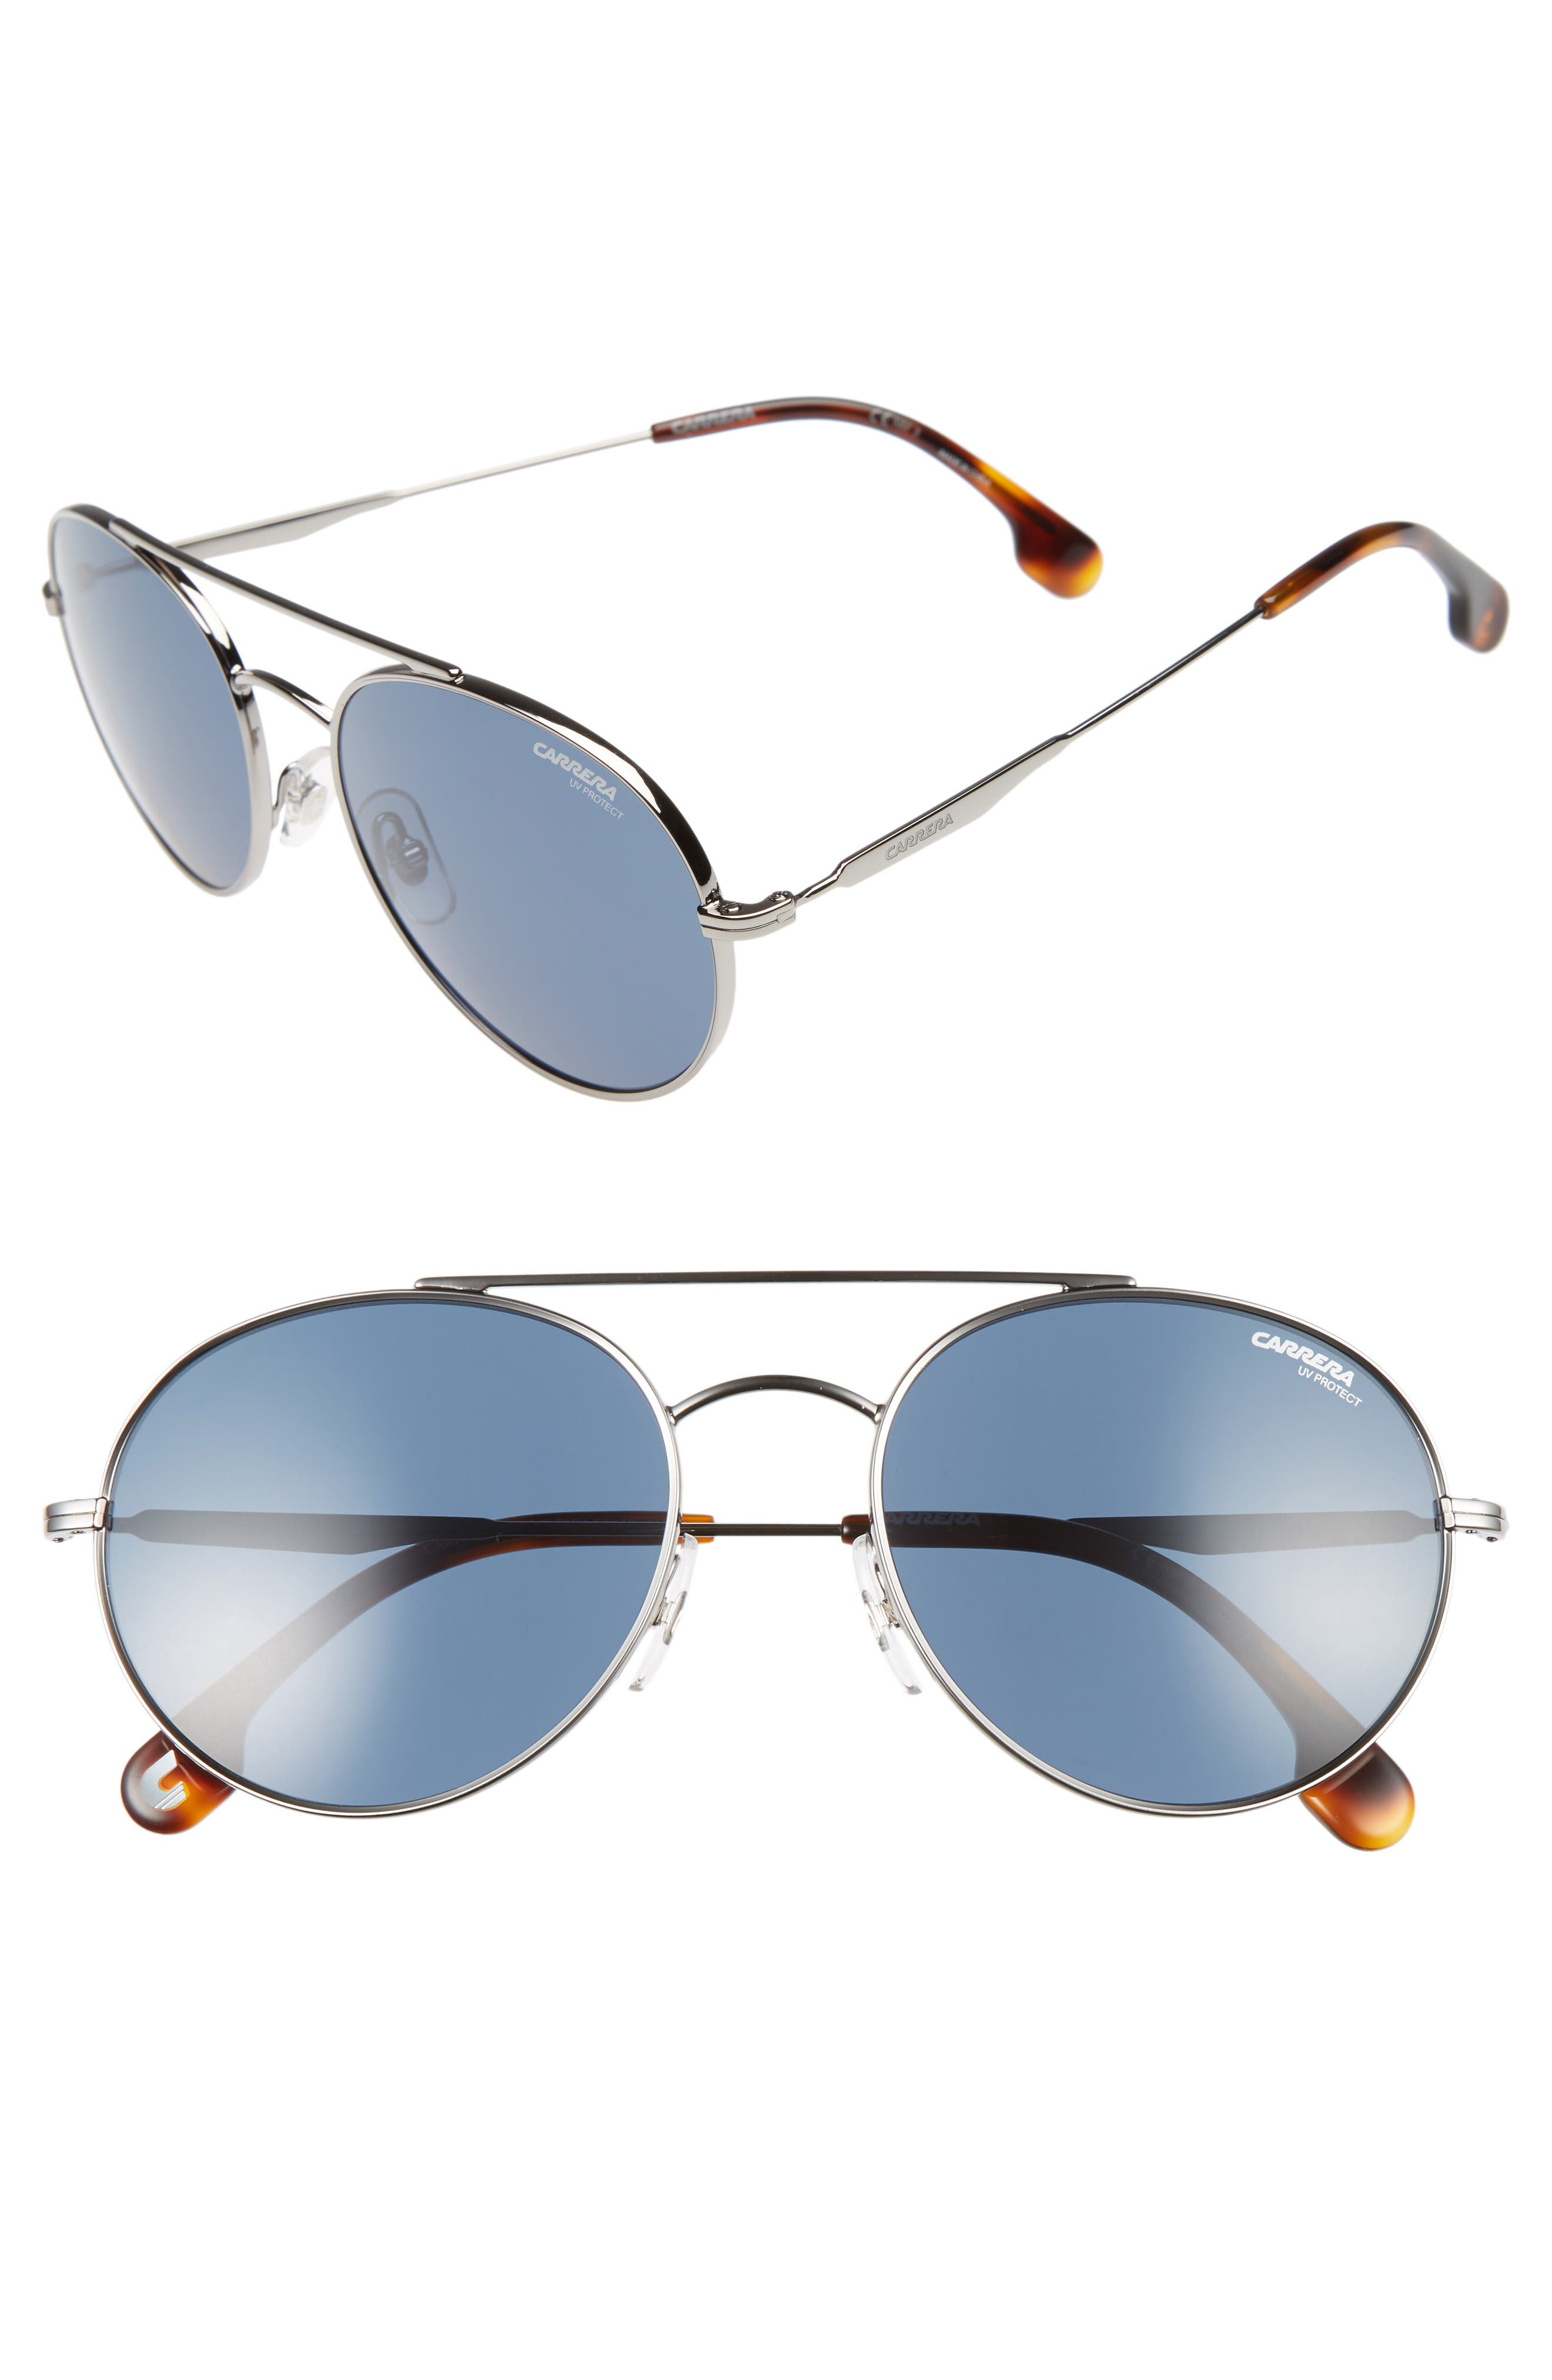 56mm Sunglasses,                             Main thumbnail 1, color,                             Ruthenium/ Blue Avio